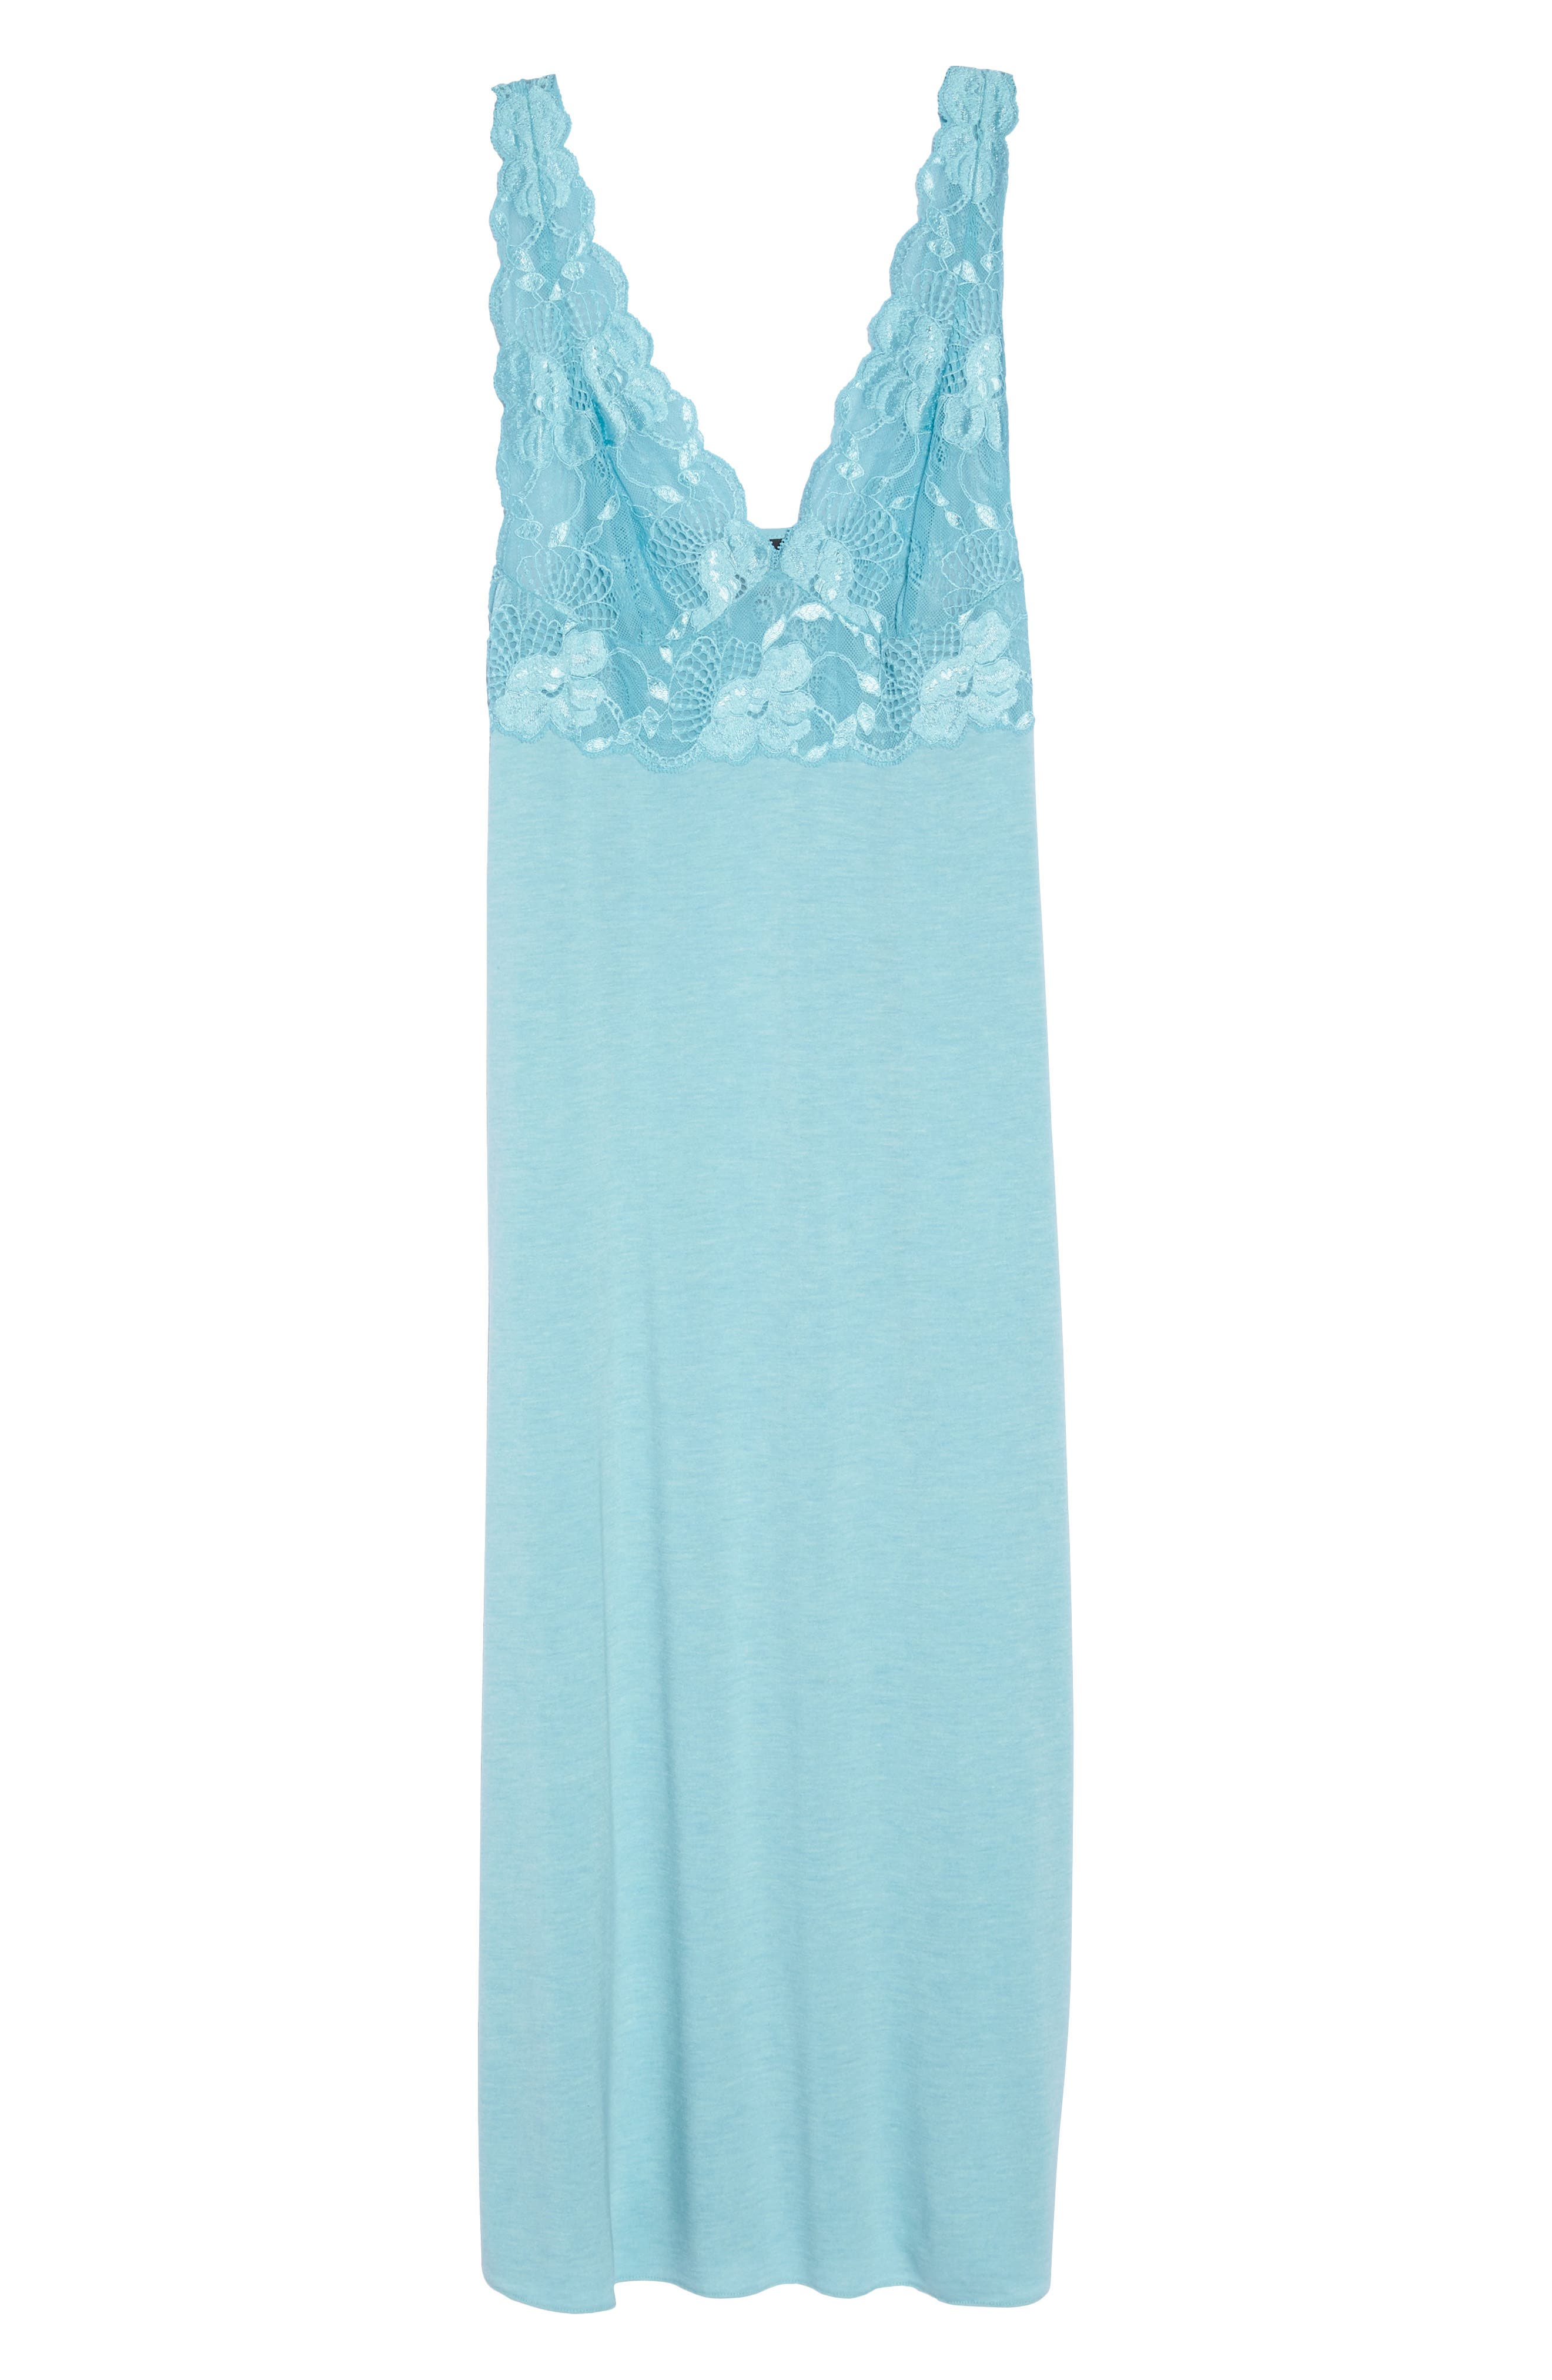 'Zen Floral' Nightgown,                         Main,                         color, Turquoise